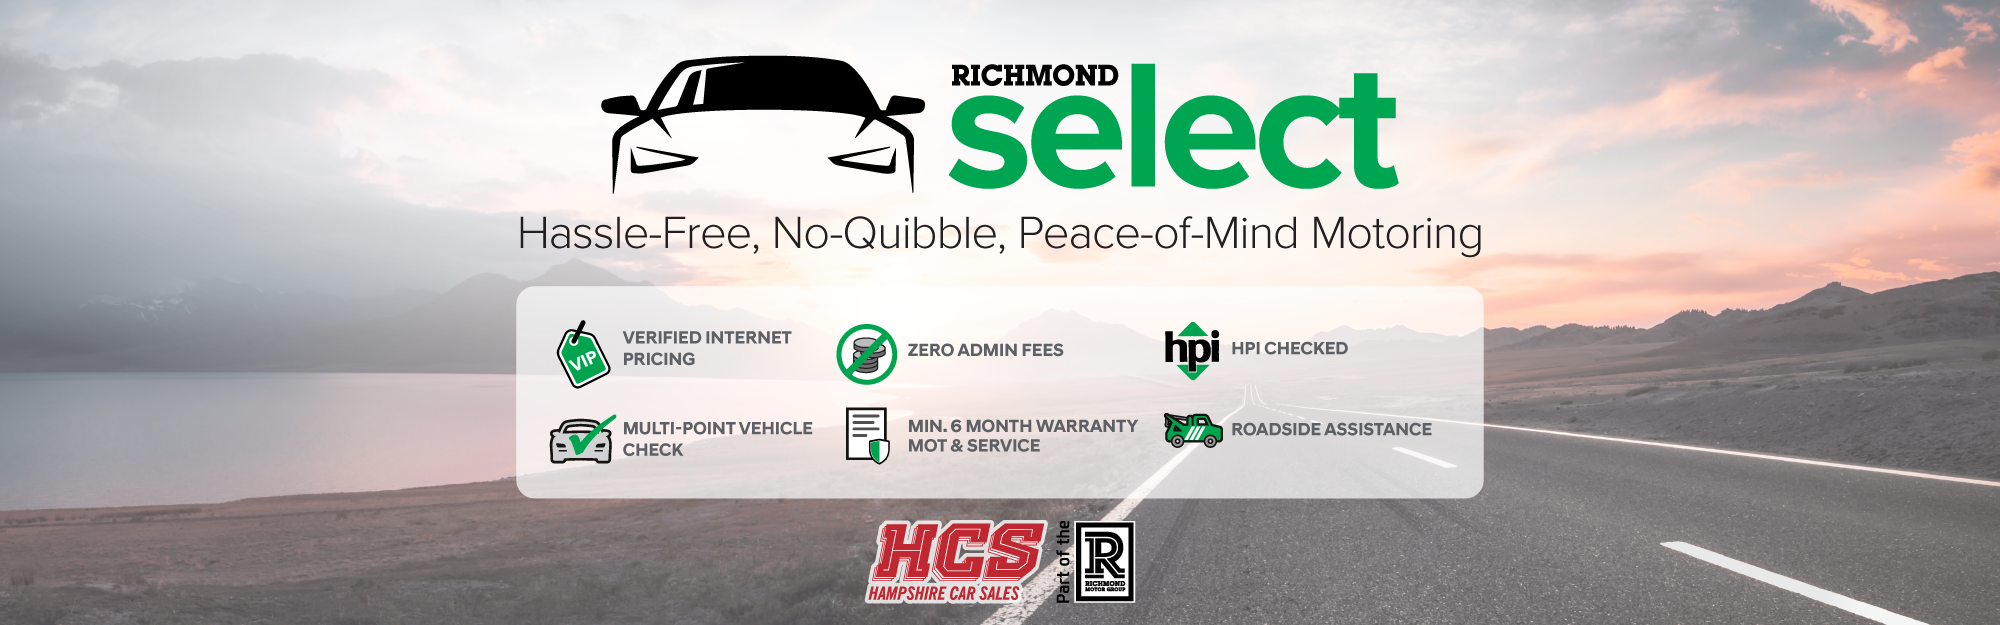 Richmond Select Headline Banner